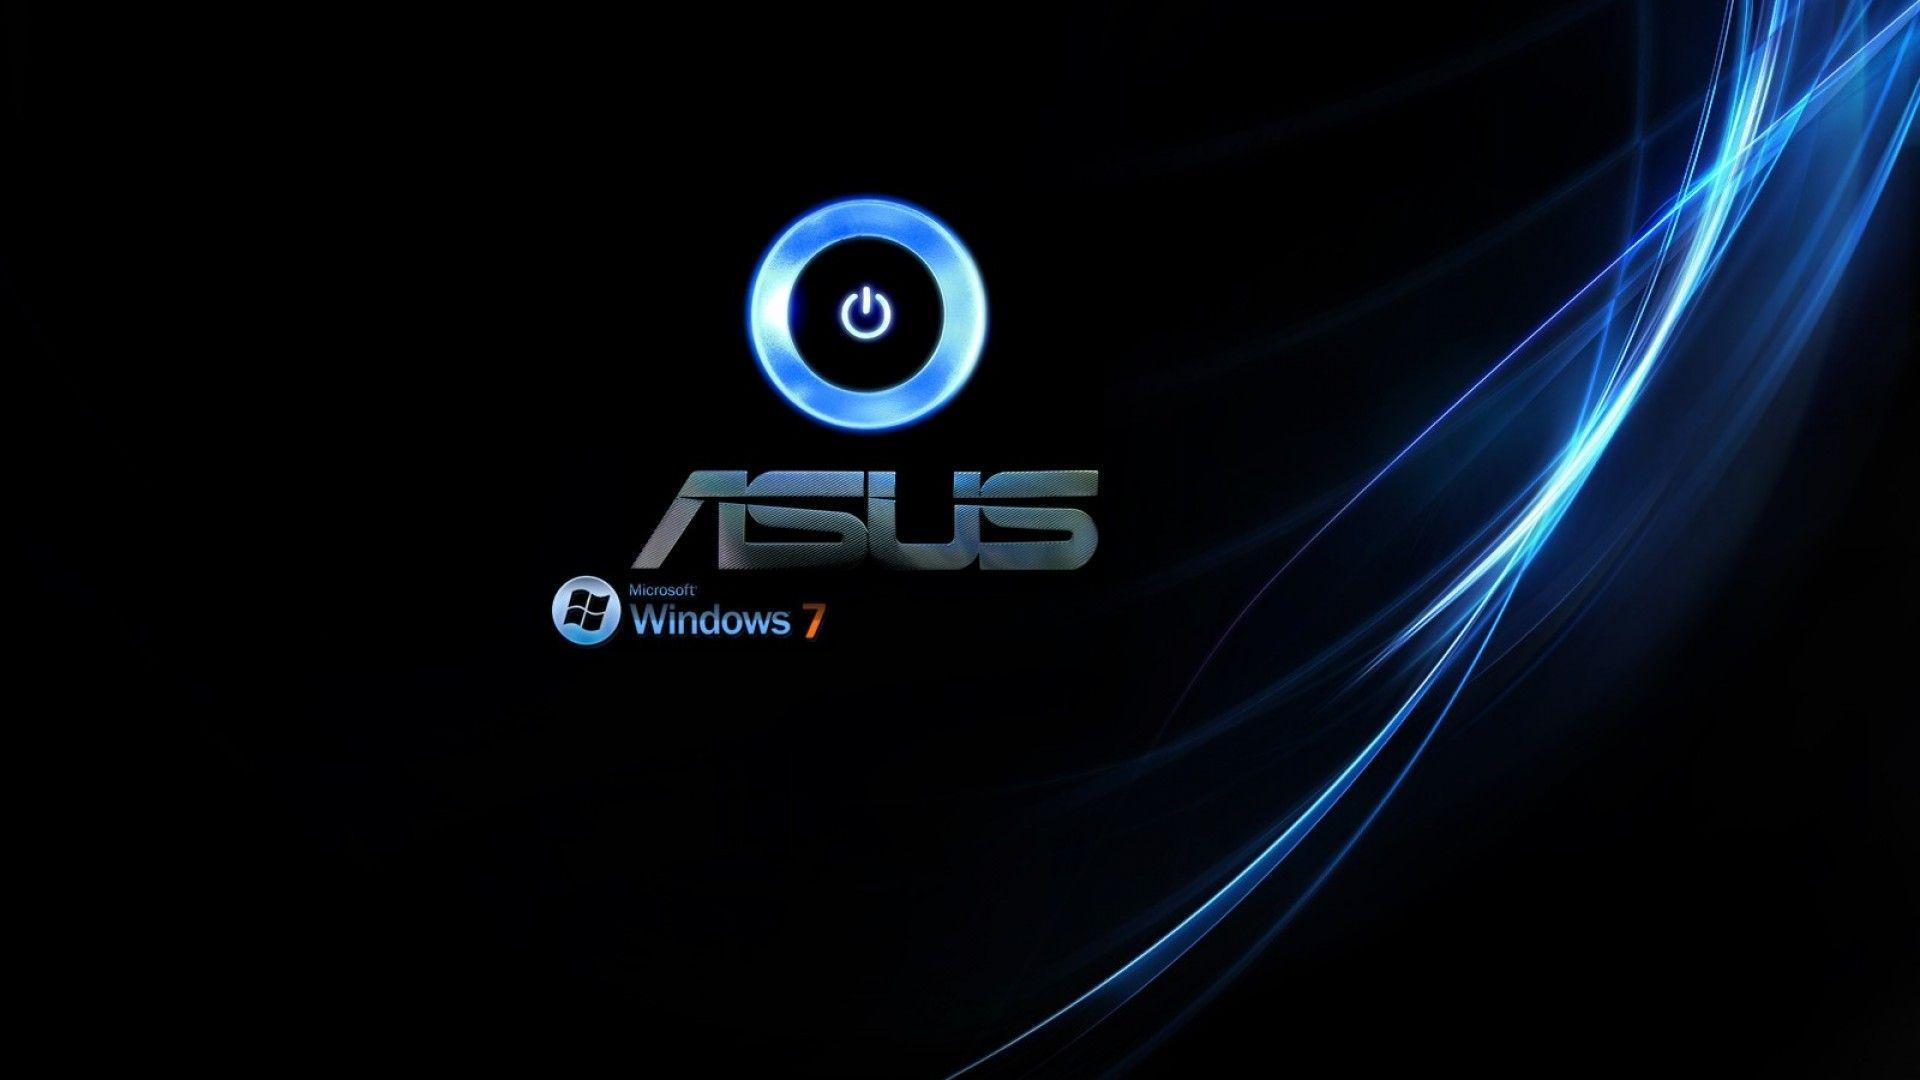 Asus Mylogo 2 Free Download